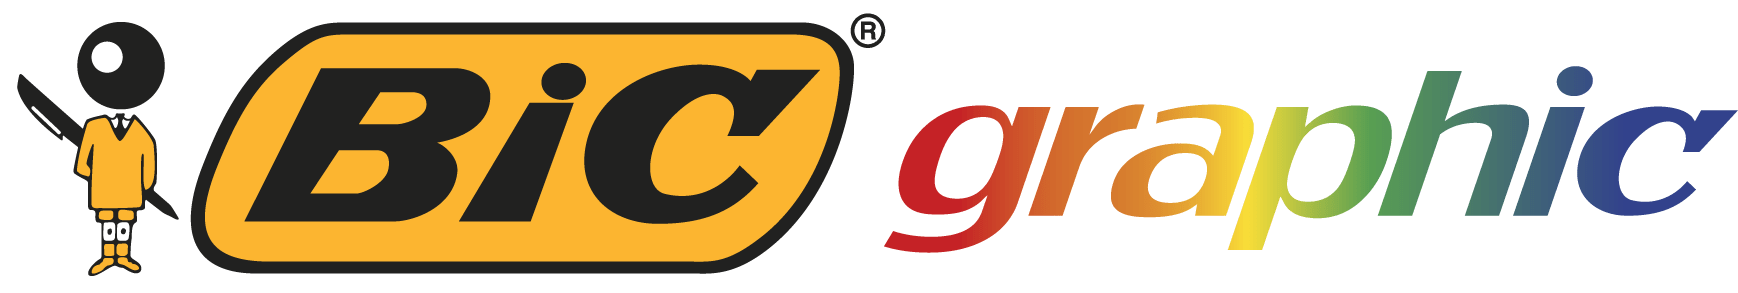 BIC Graphic Competitors, Revenue and Employees - Owler Company Profile